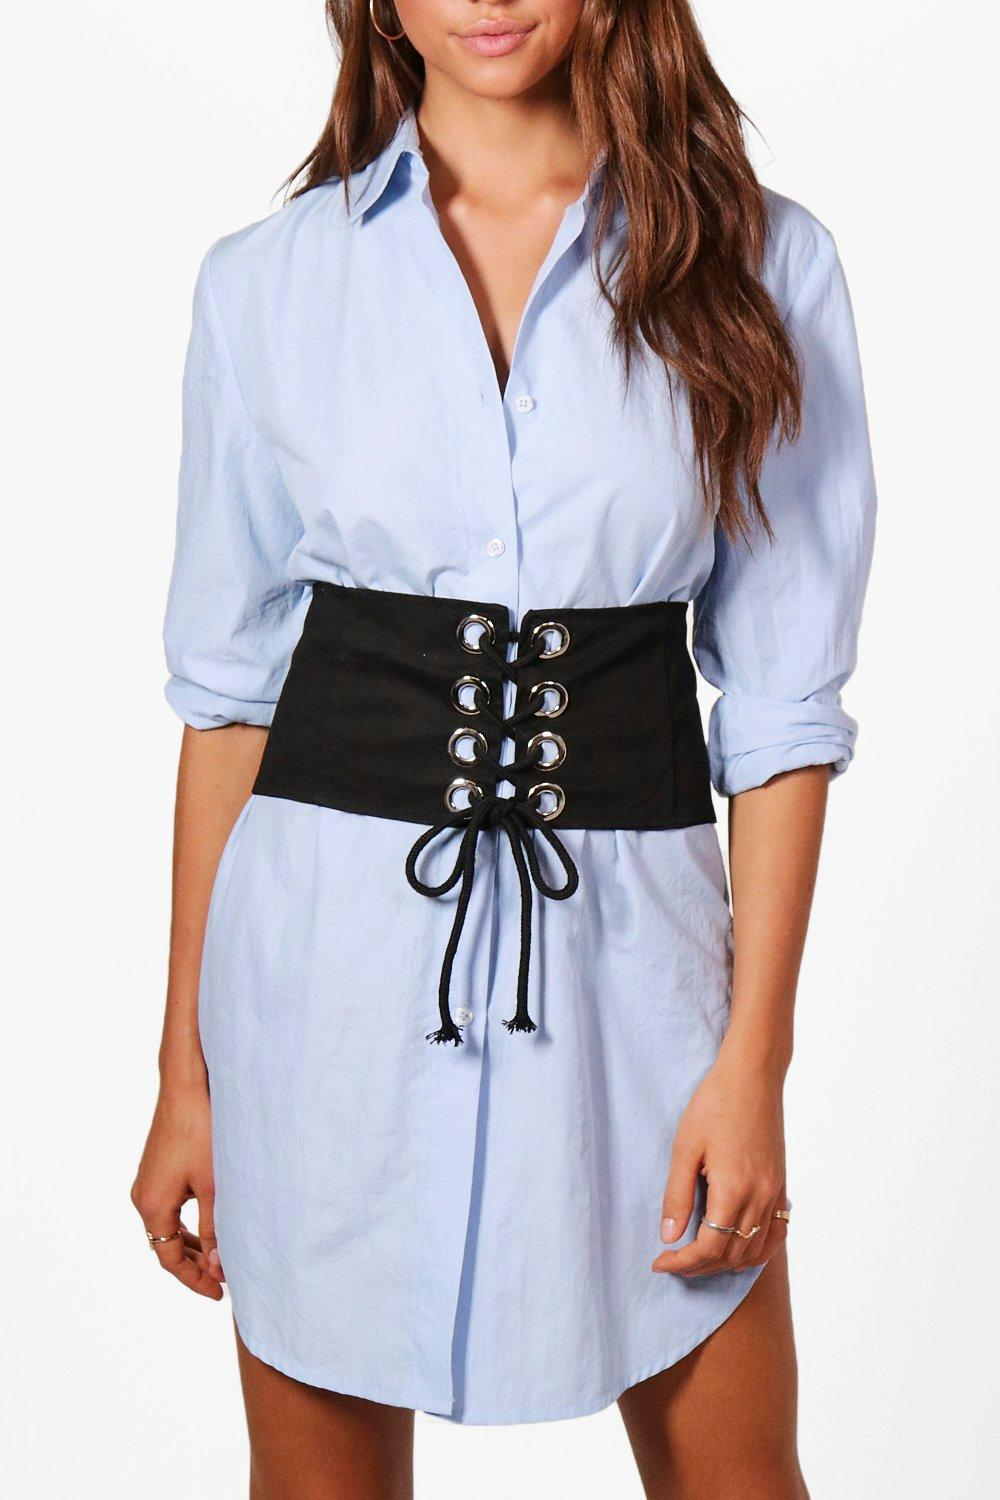 Denim Eyelet Detail Corset Belt - black - Elizabet